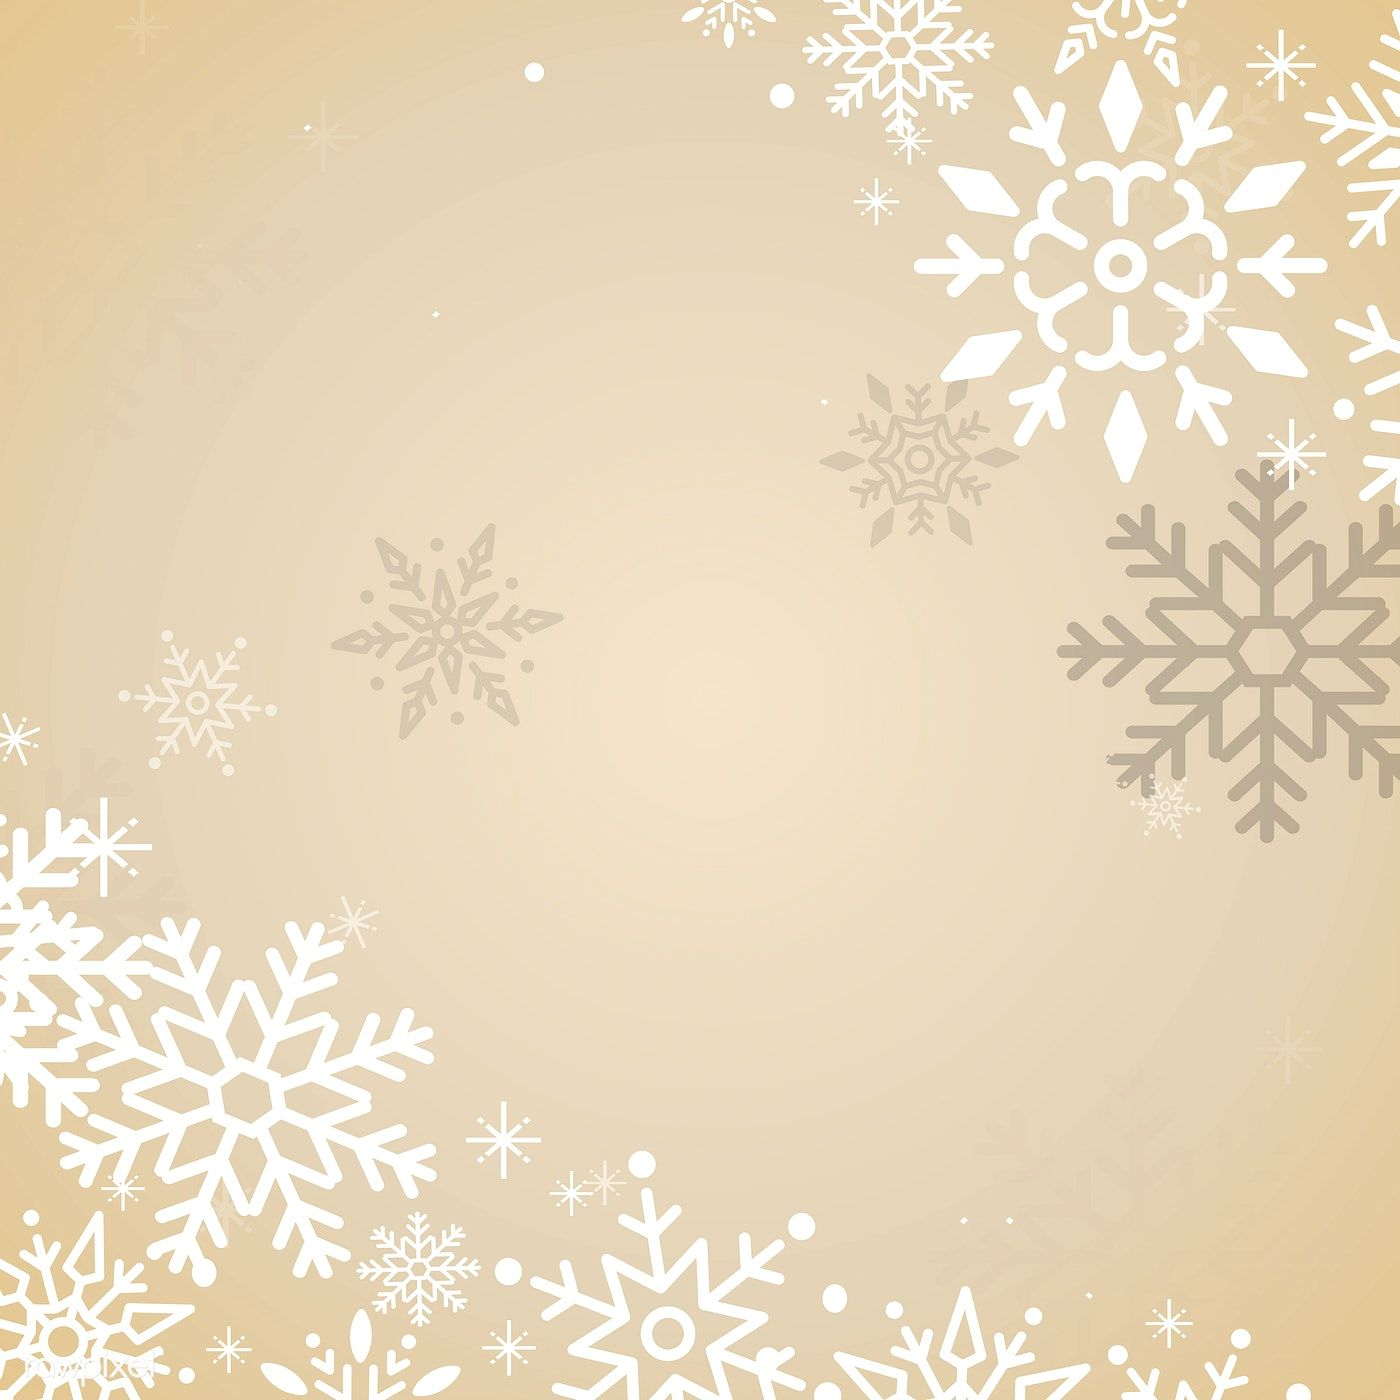 Gold Christmas Winter Holiday Background With Snowflake Vector Free Image By Rawpixel Com Holiday Background Christmas Background Vector Gold Christmas